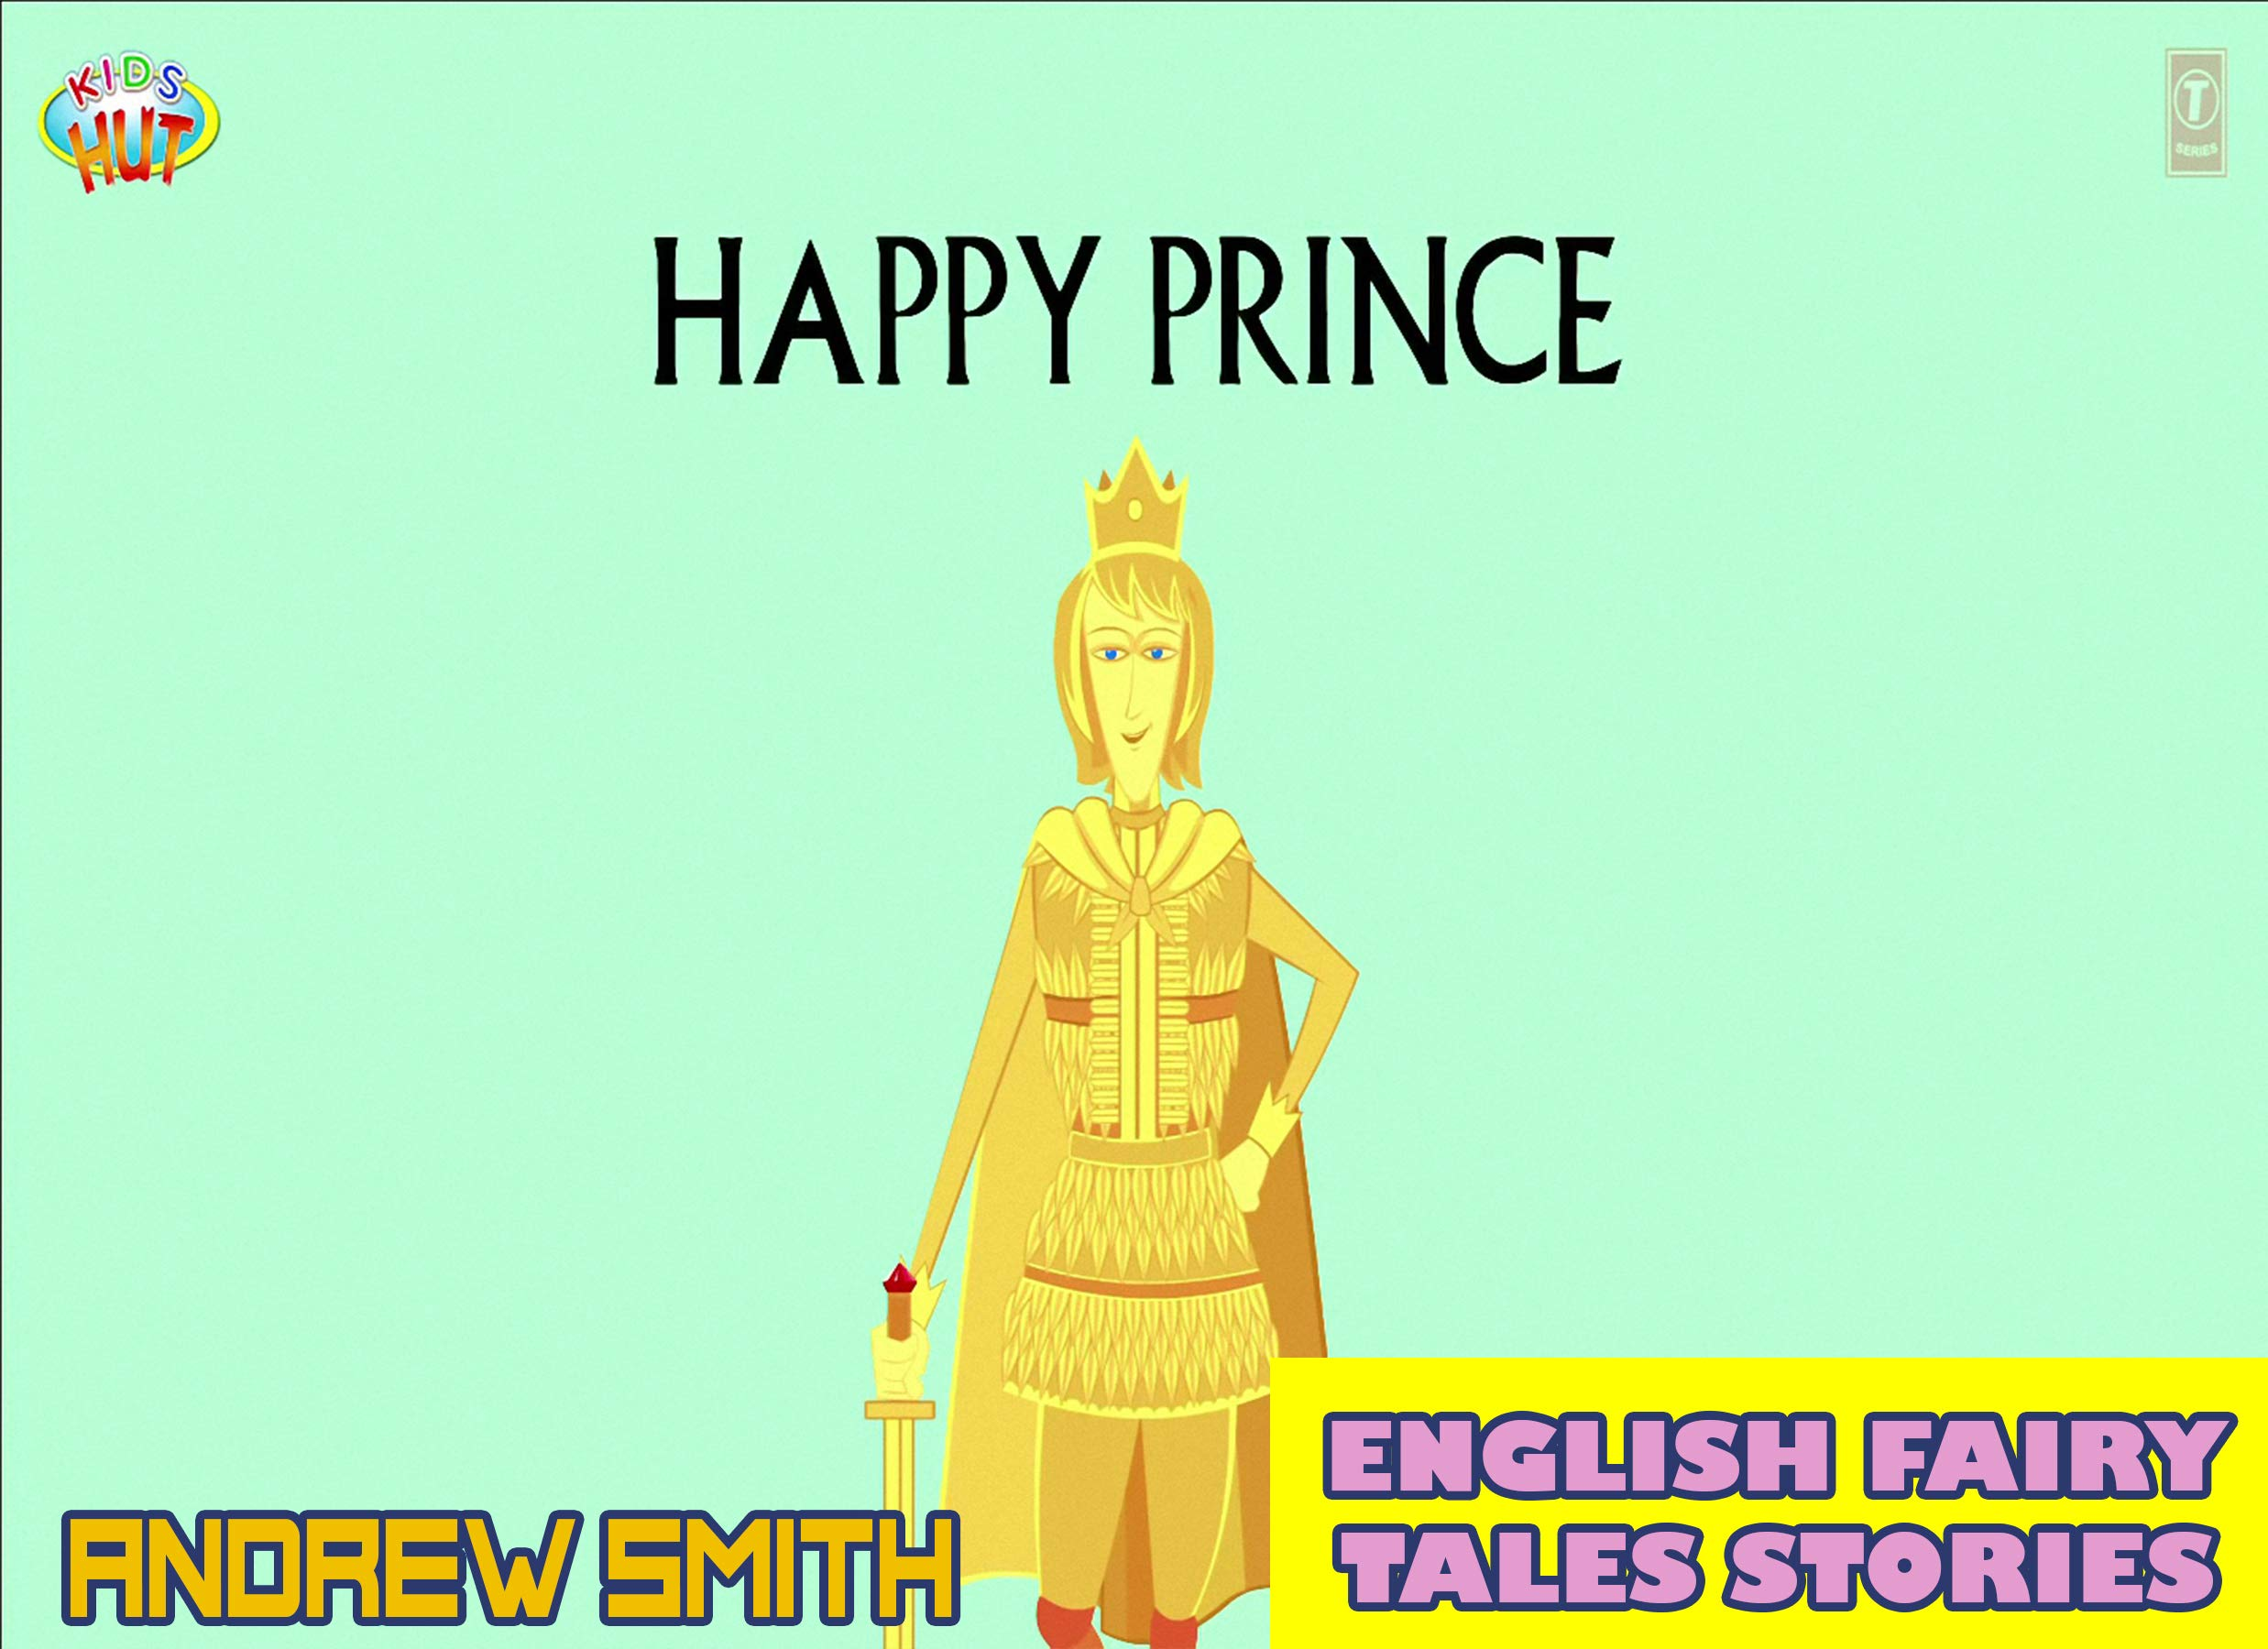 English Fairy Tales Stories: Happy Prince - Great 5-Minute Fairy Tale Picture Book For Kids, Boys, Girls, Children Of All Age